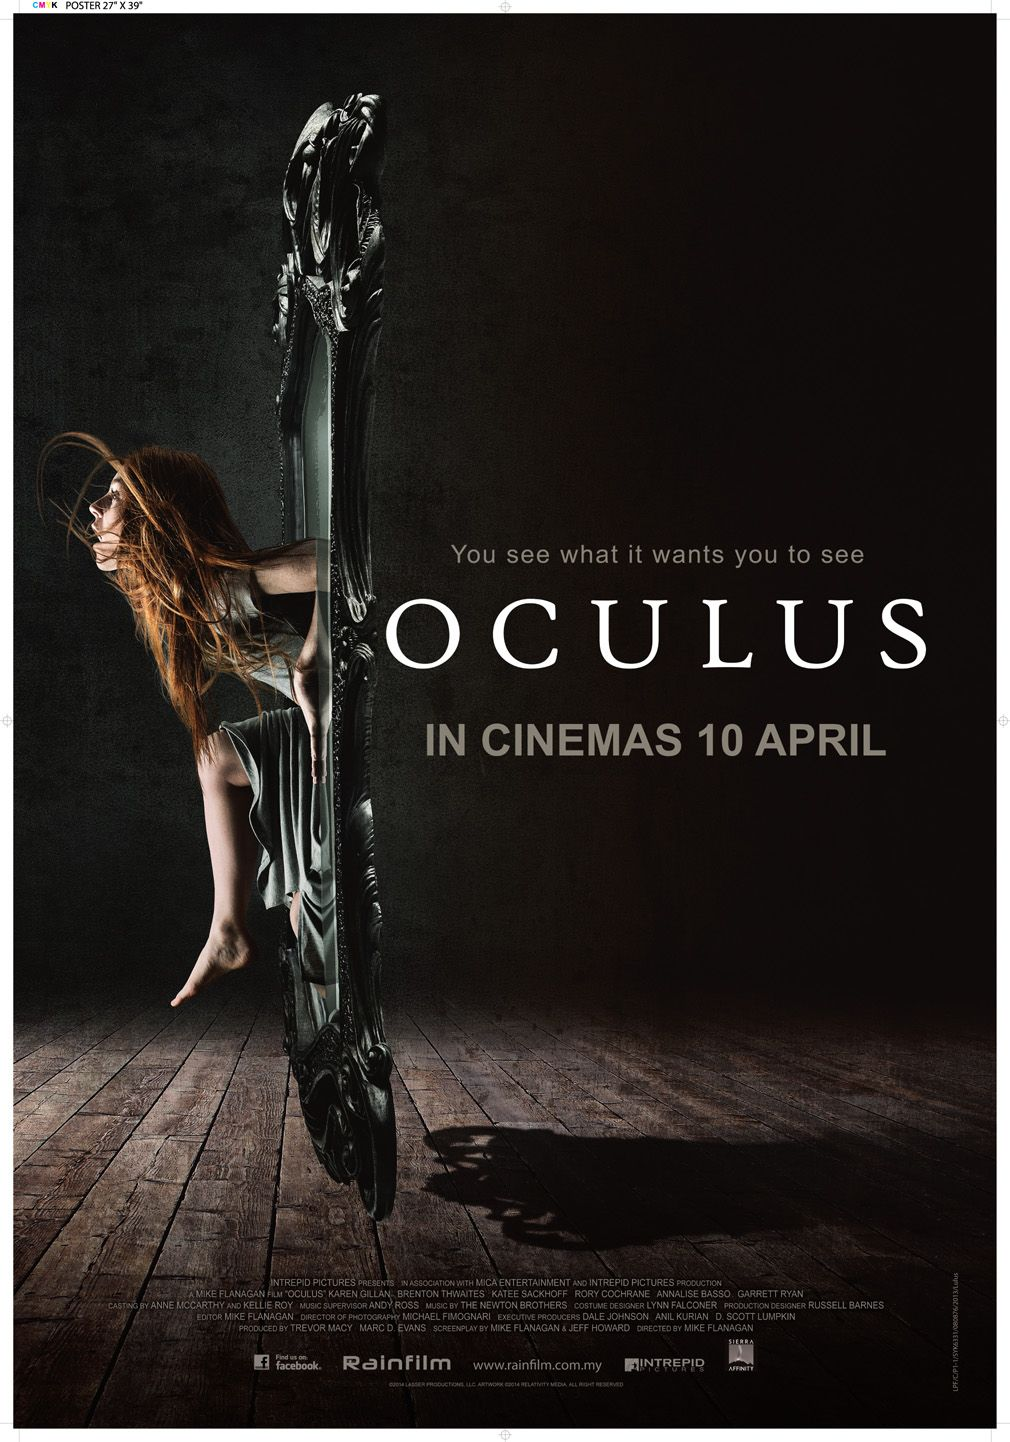 oculus movie free download in hindi hd